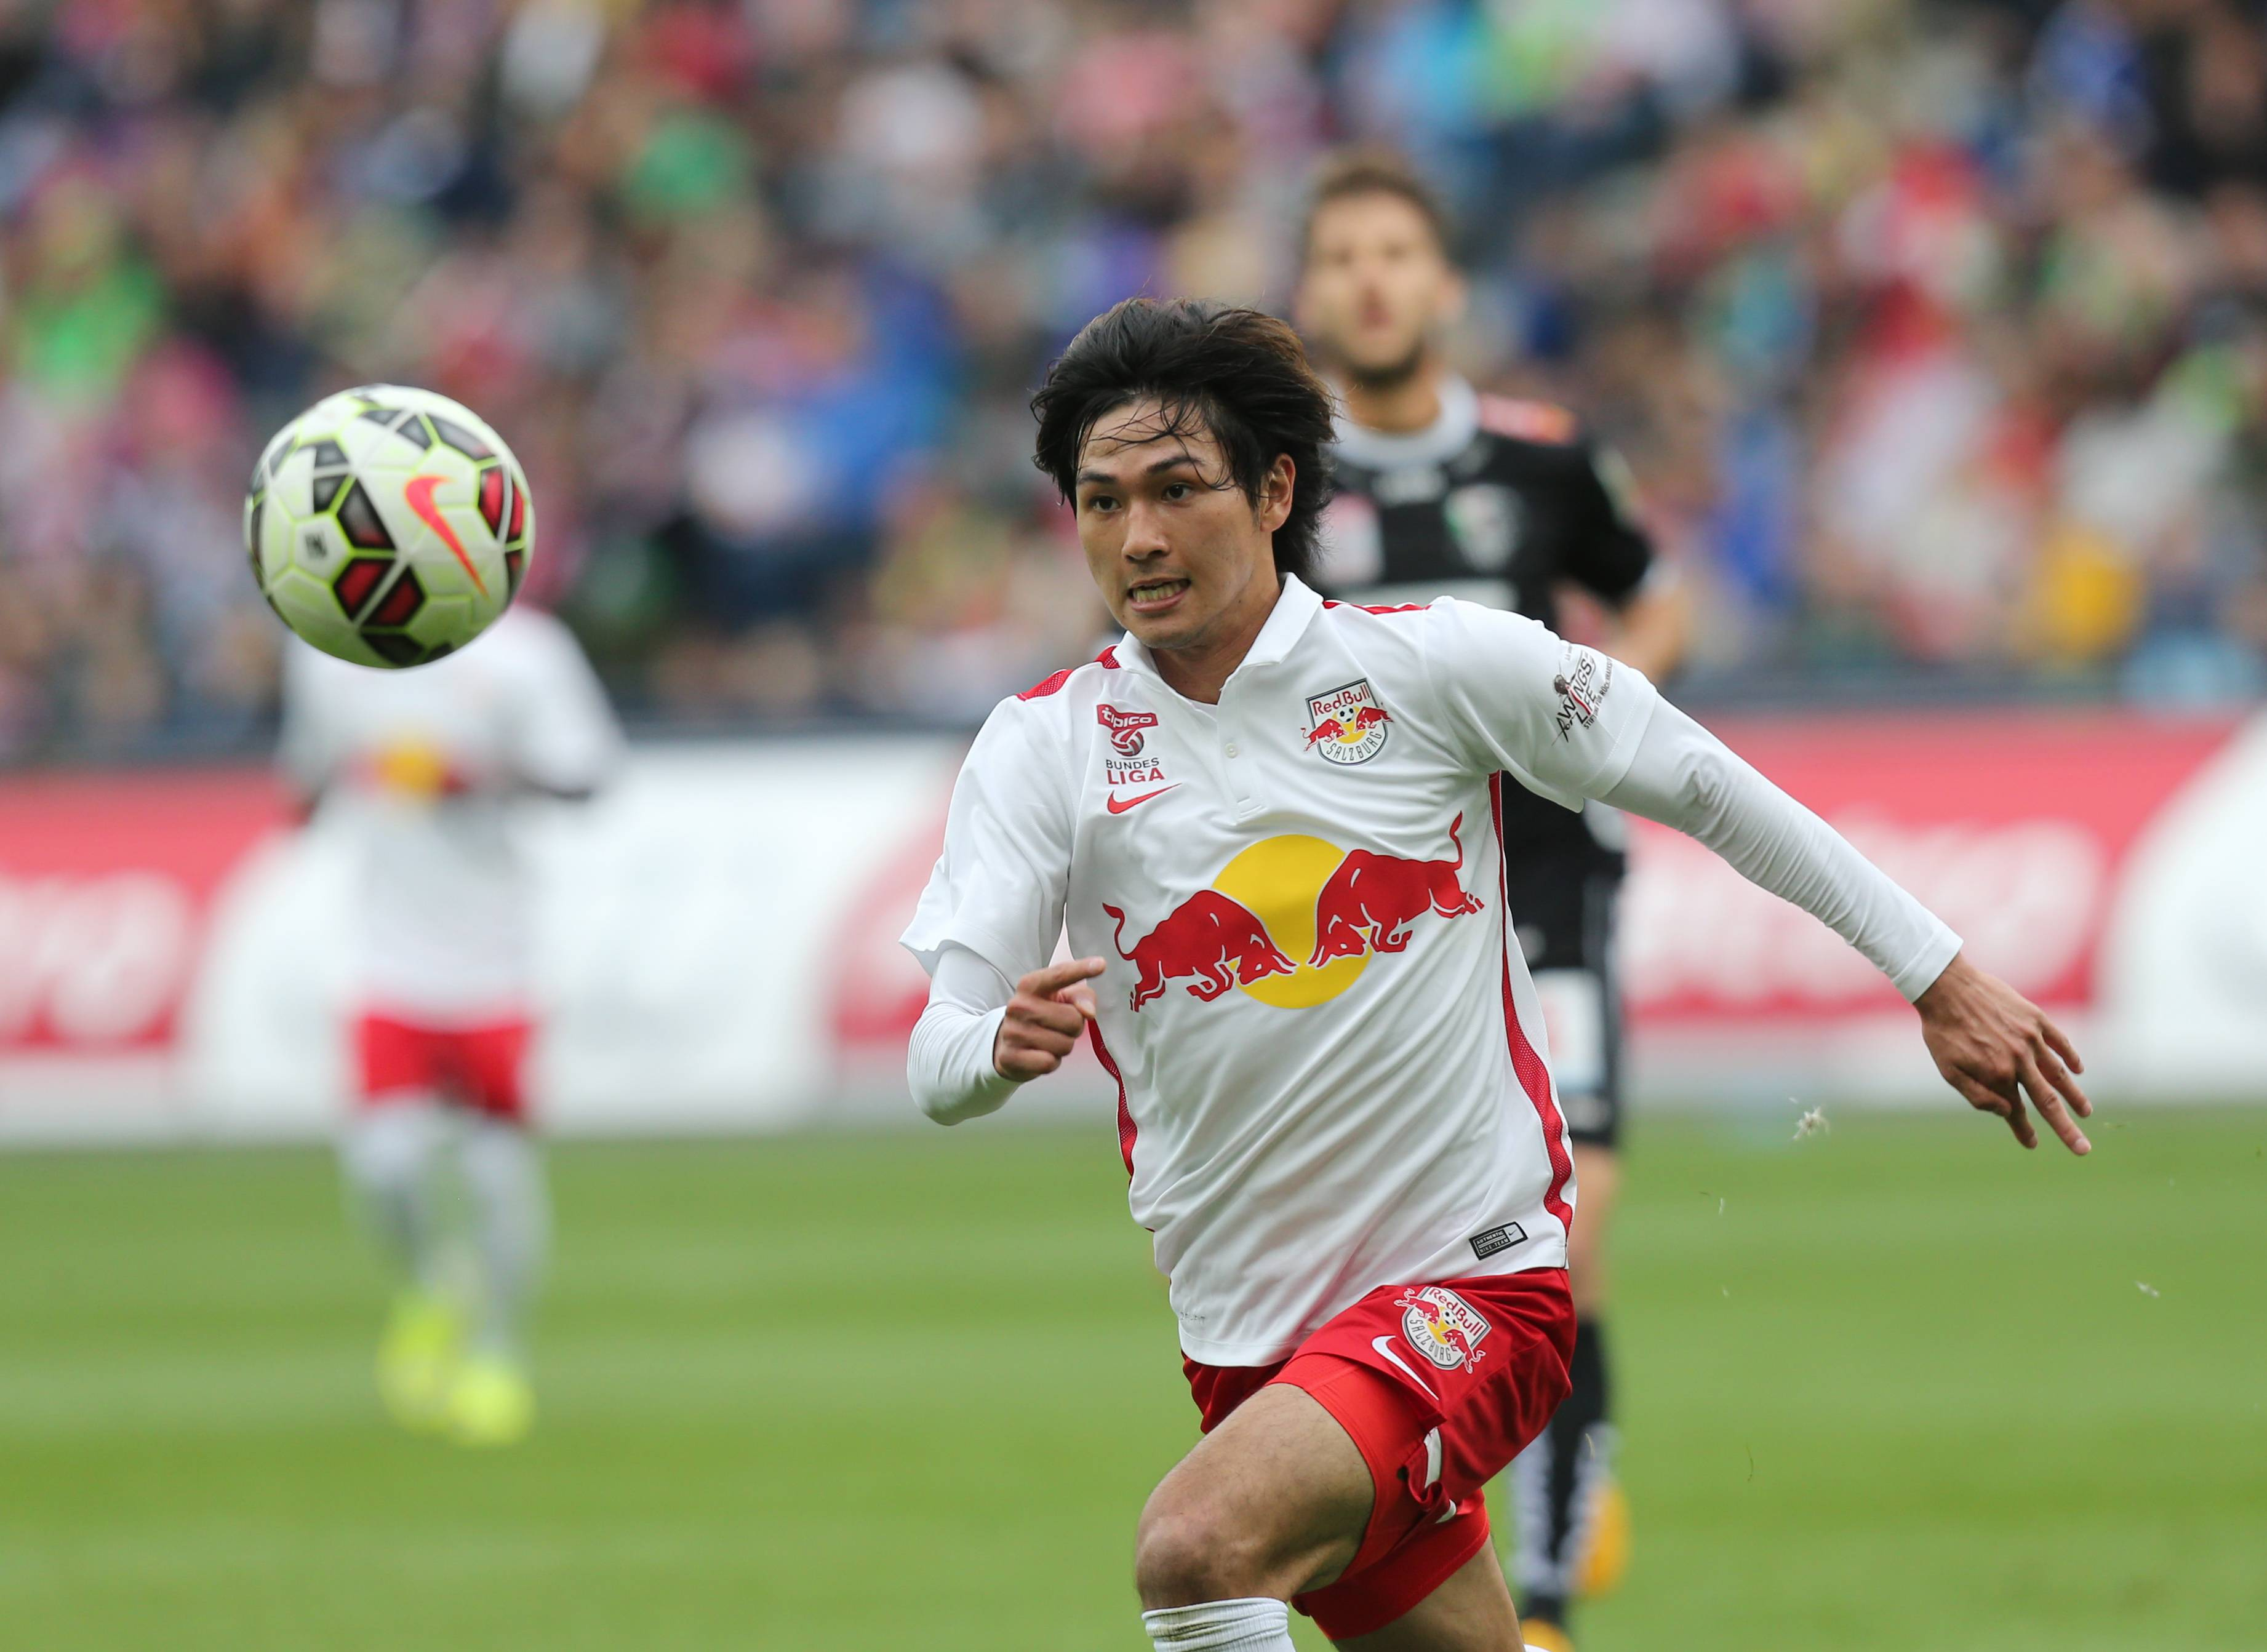 VIDEO: Takumi Minamino scores a hat-trick as Salzburg hammer Ried in Austrian League